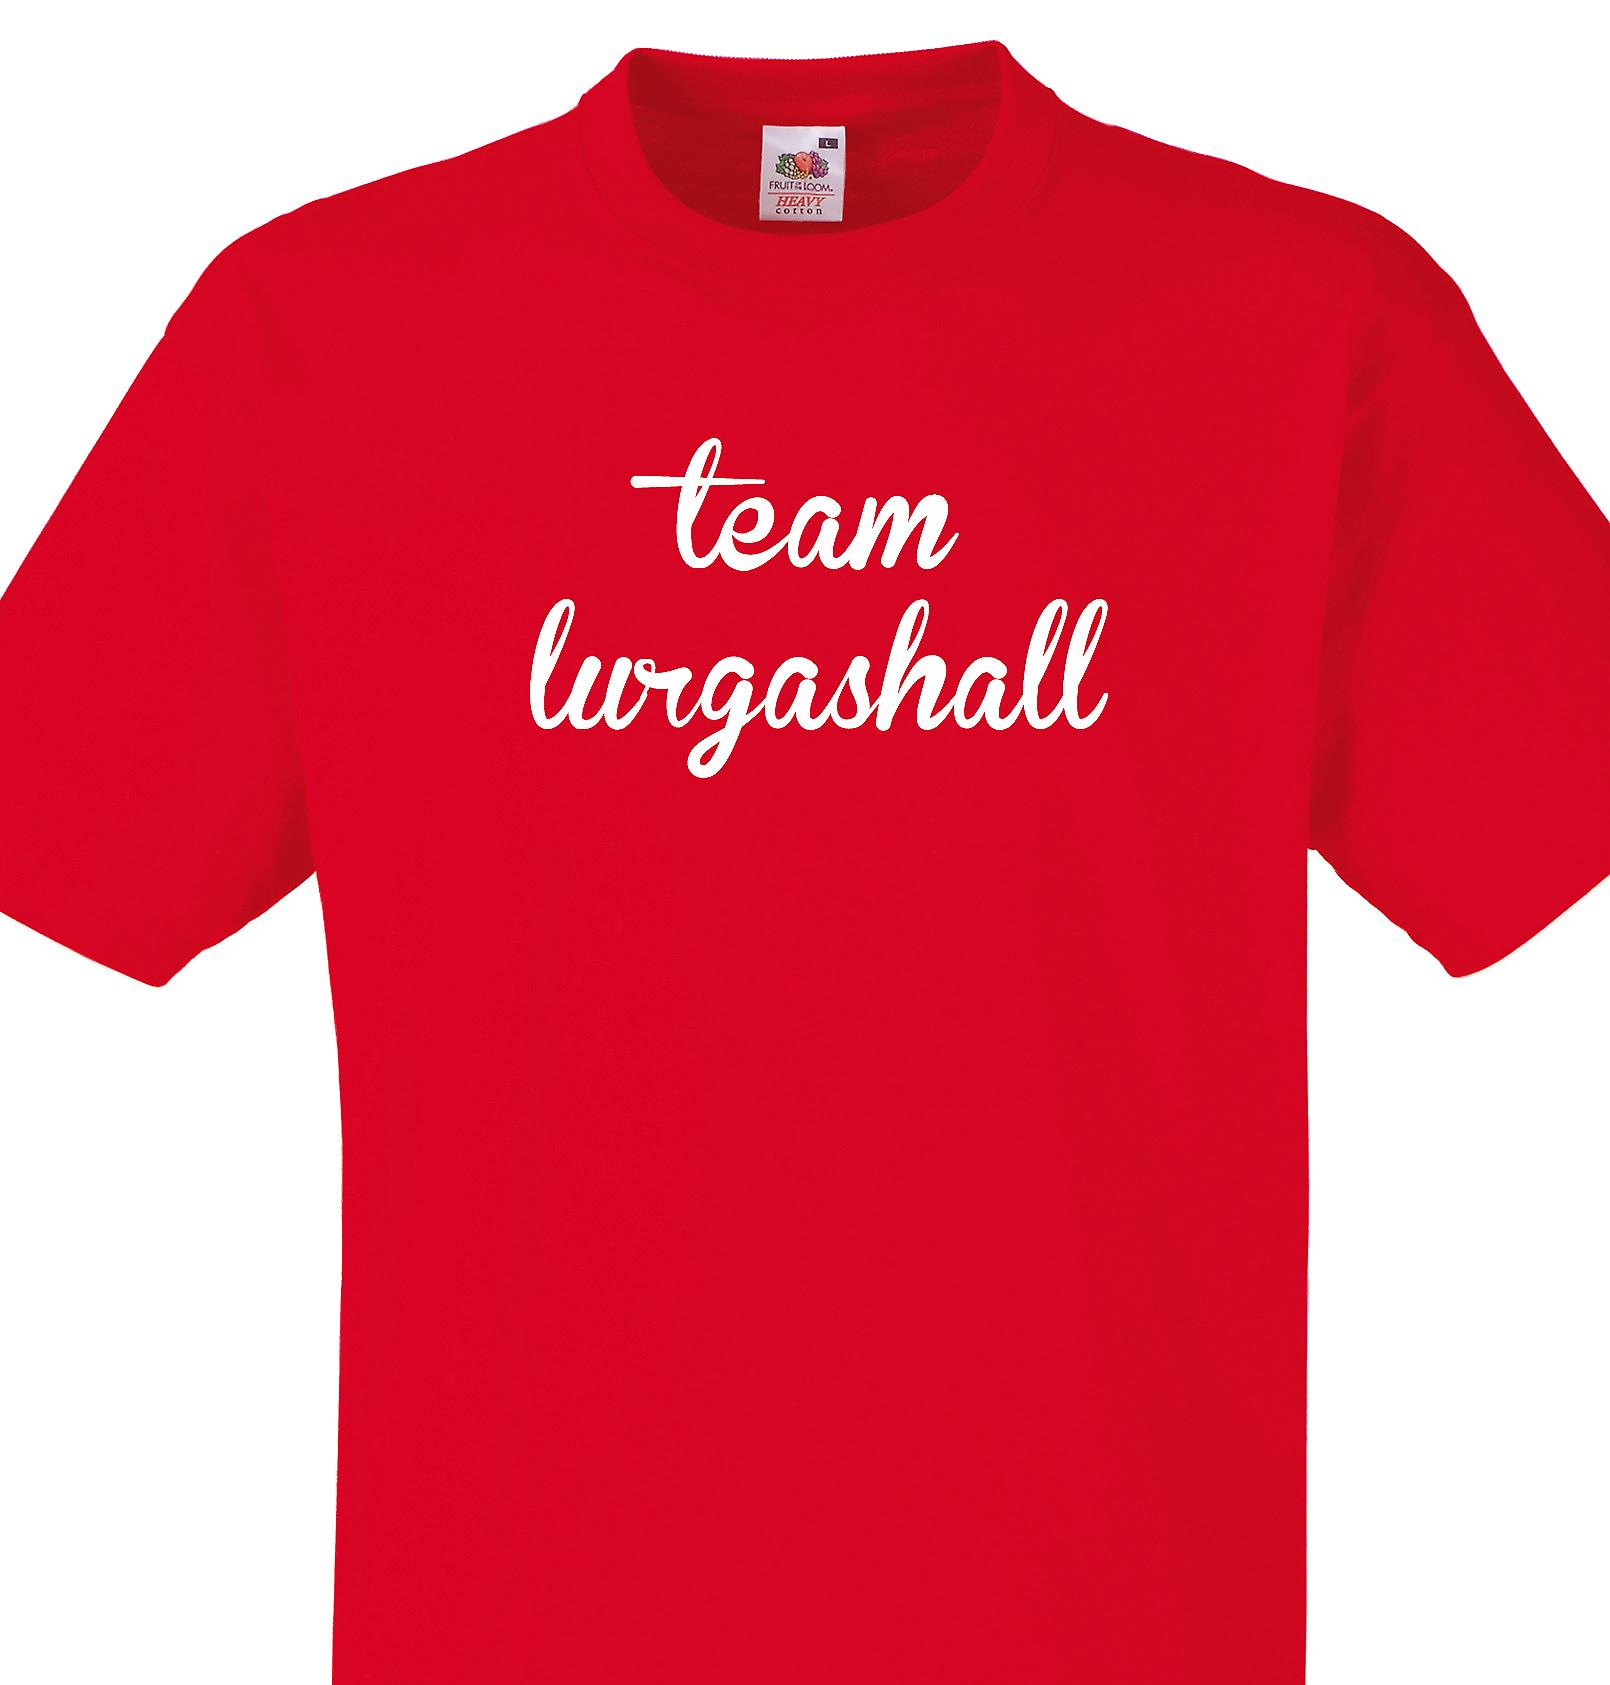 Team Lurgashall Red T shirt